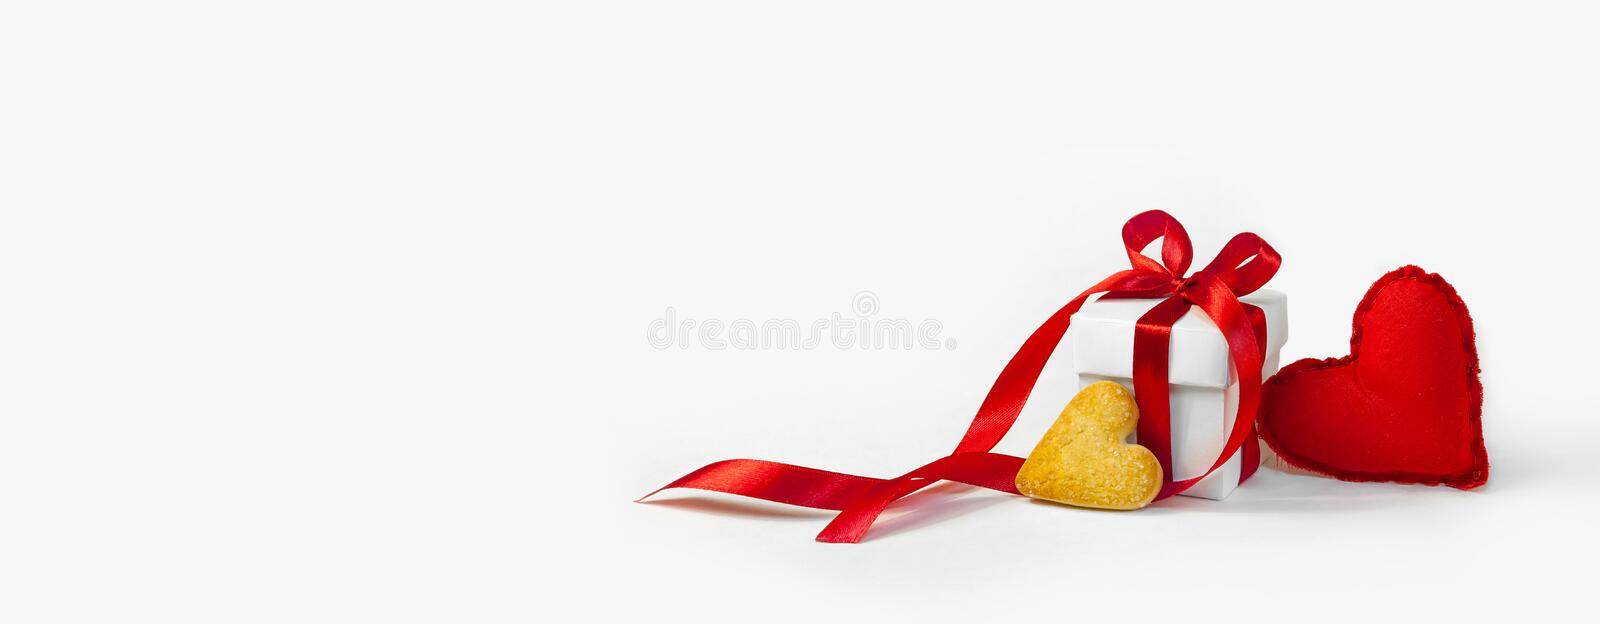 Concept Valentine`s Day. Red Soft Toy Heart and White Gift Box with Red Ribbon and Little Cookie in the Shape of Heart on Light B royalty free stock image